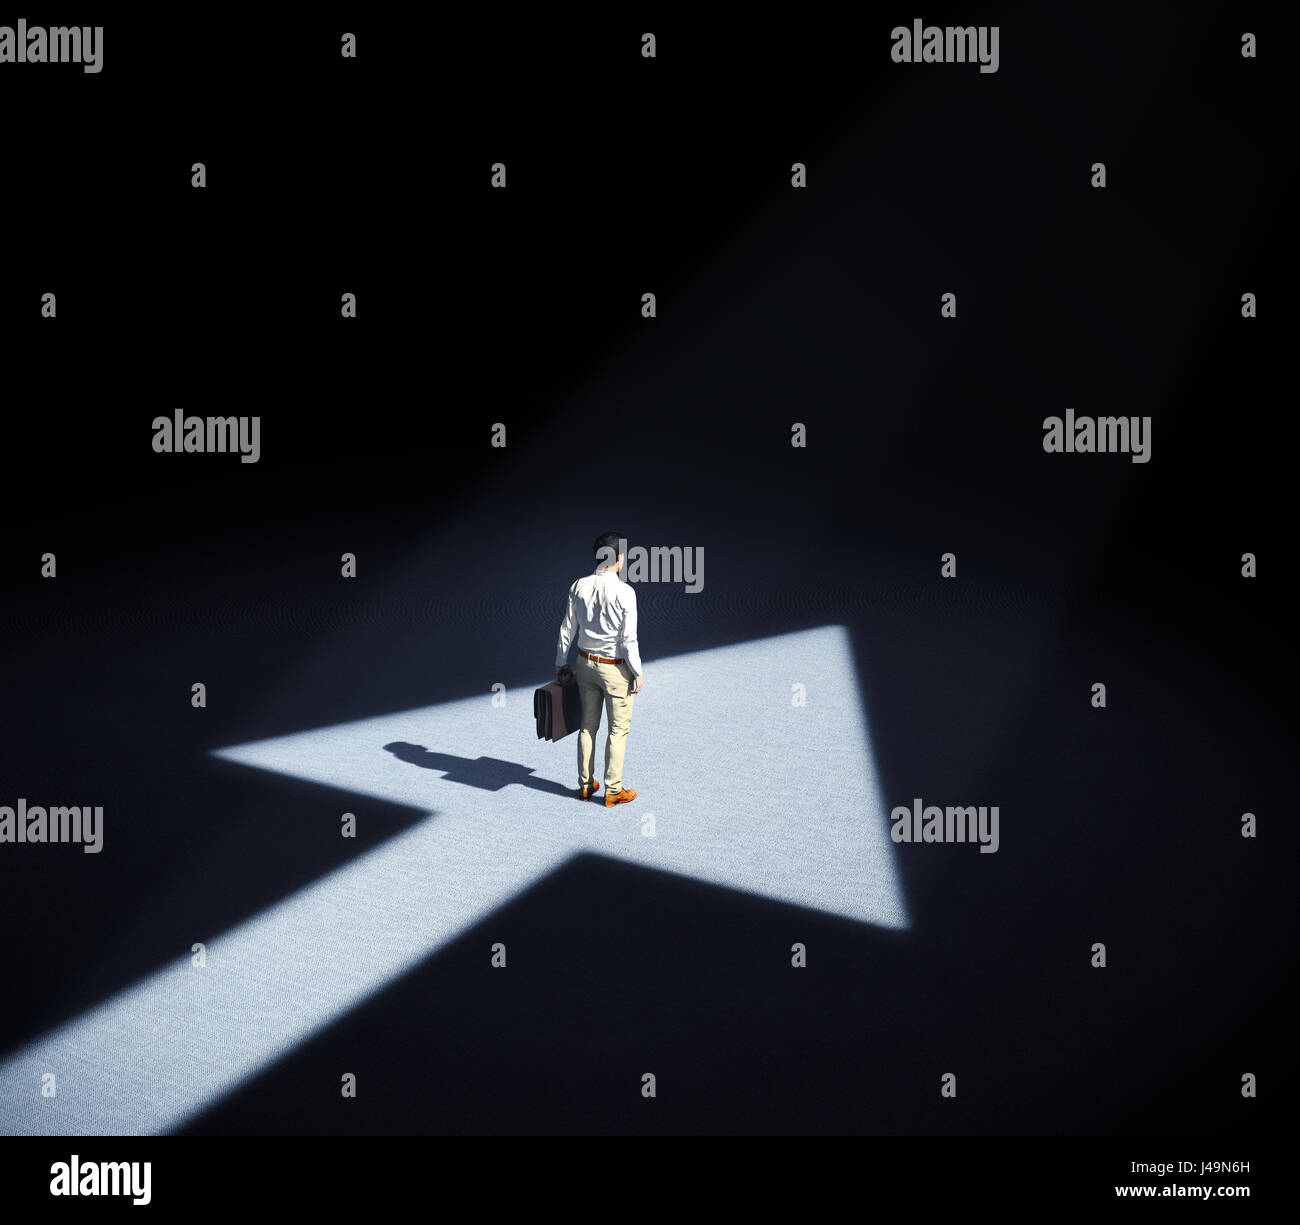 Man standing in a spotlight forming an arrow symbol - 3d illustration - Stock Image